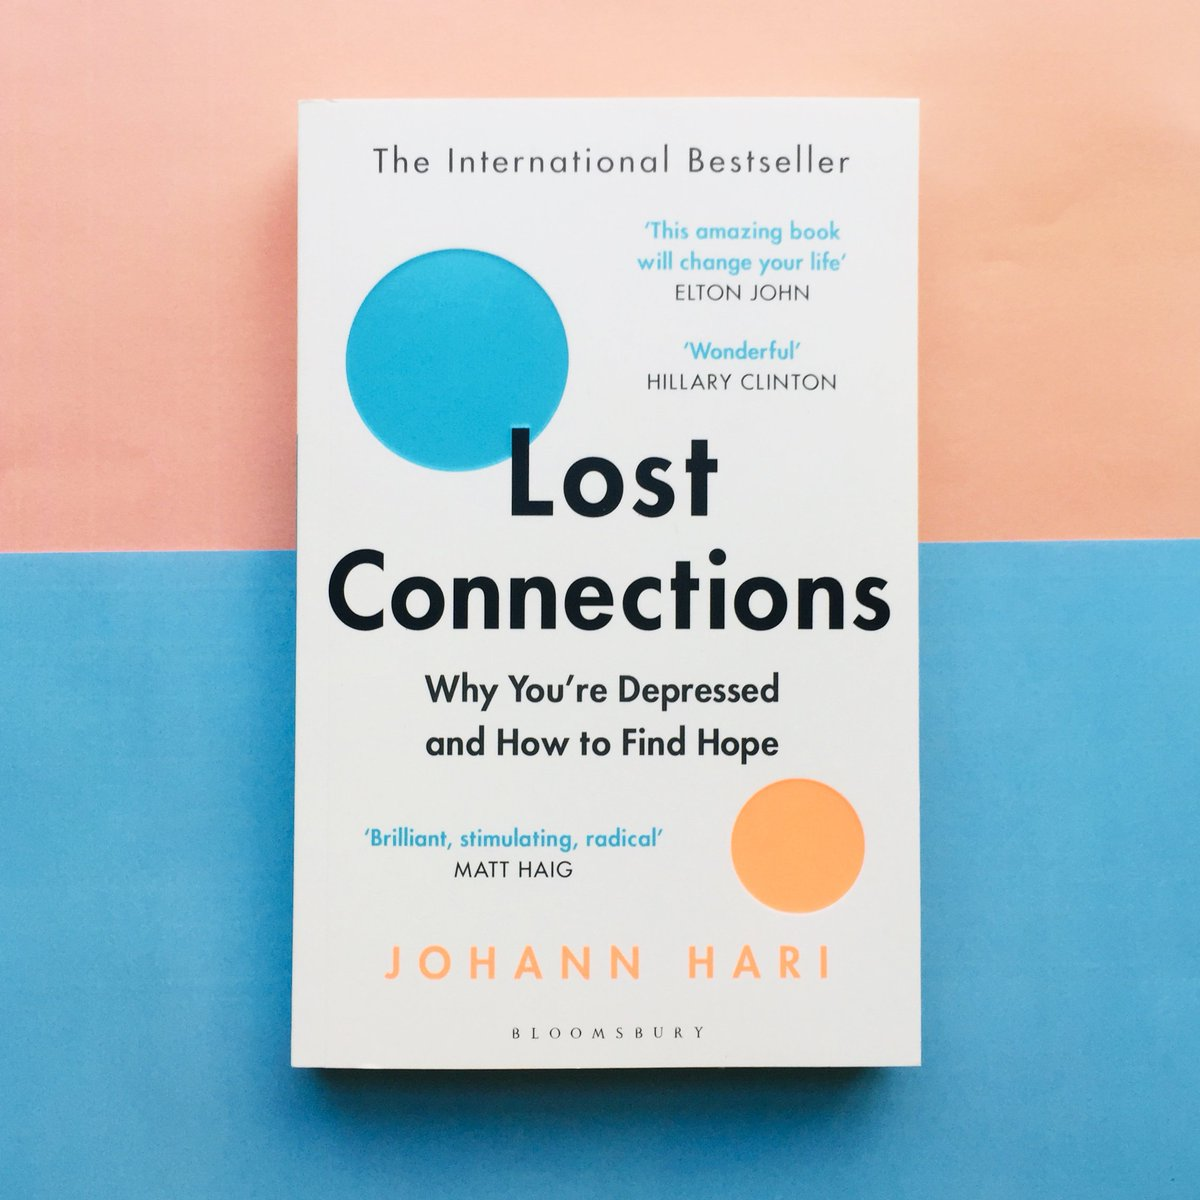 lost connections book